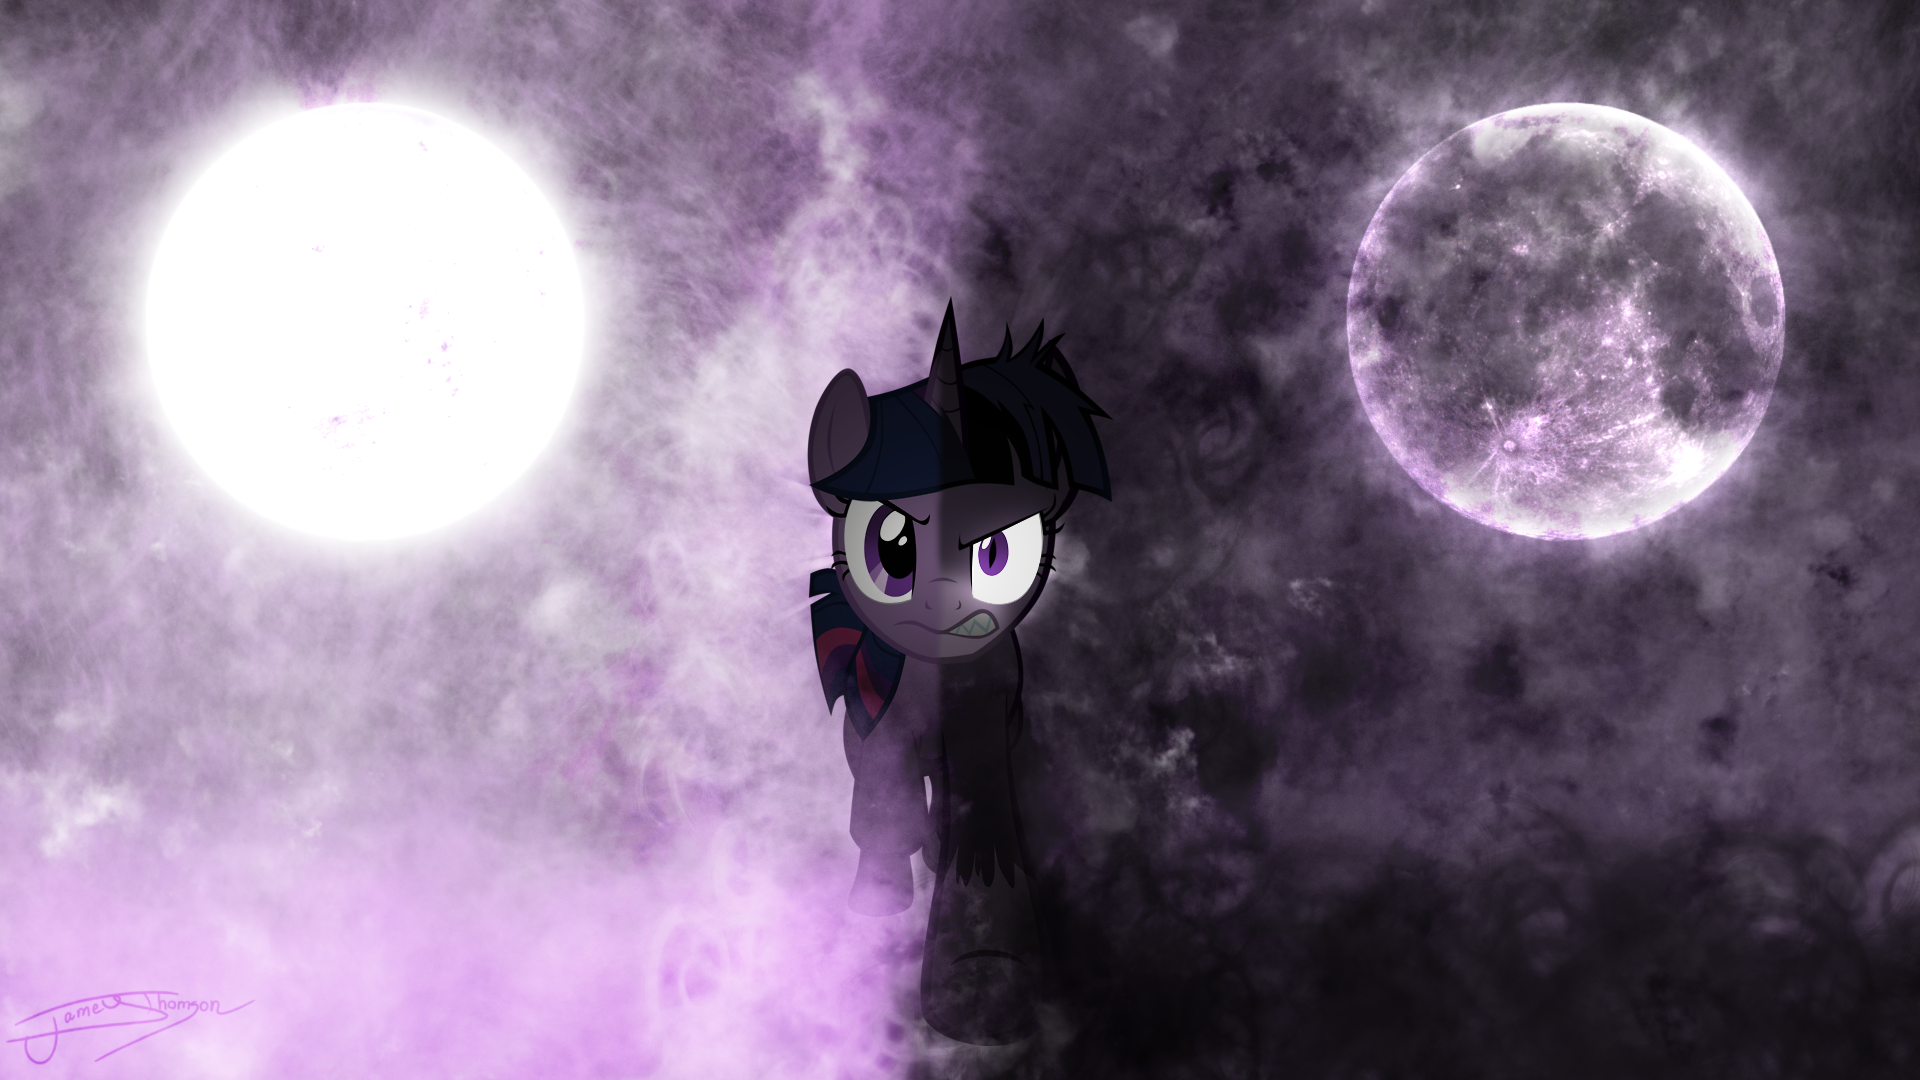 Twilight Sparkle - Curse of the Moonlight by Jamey4